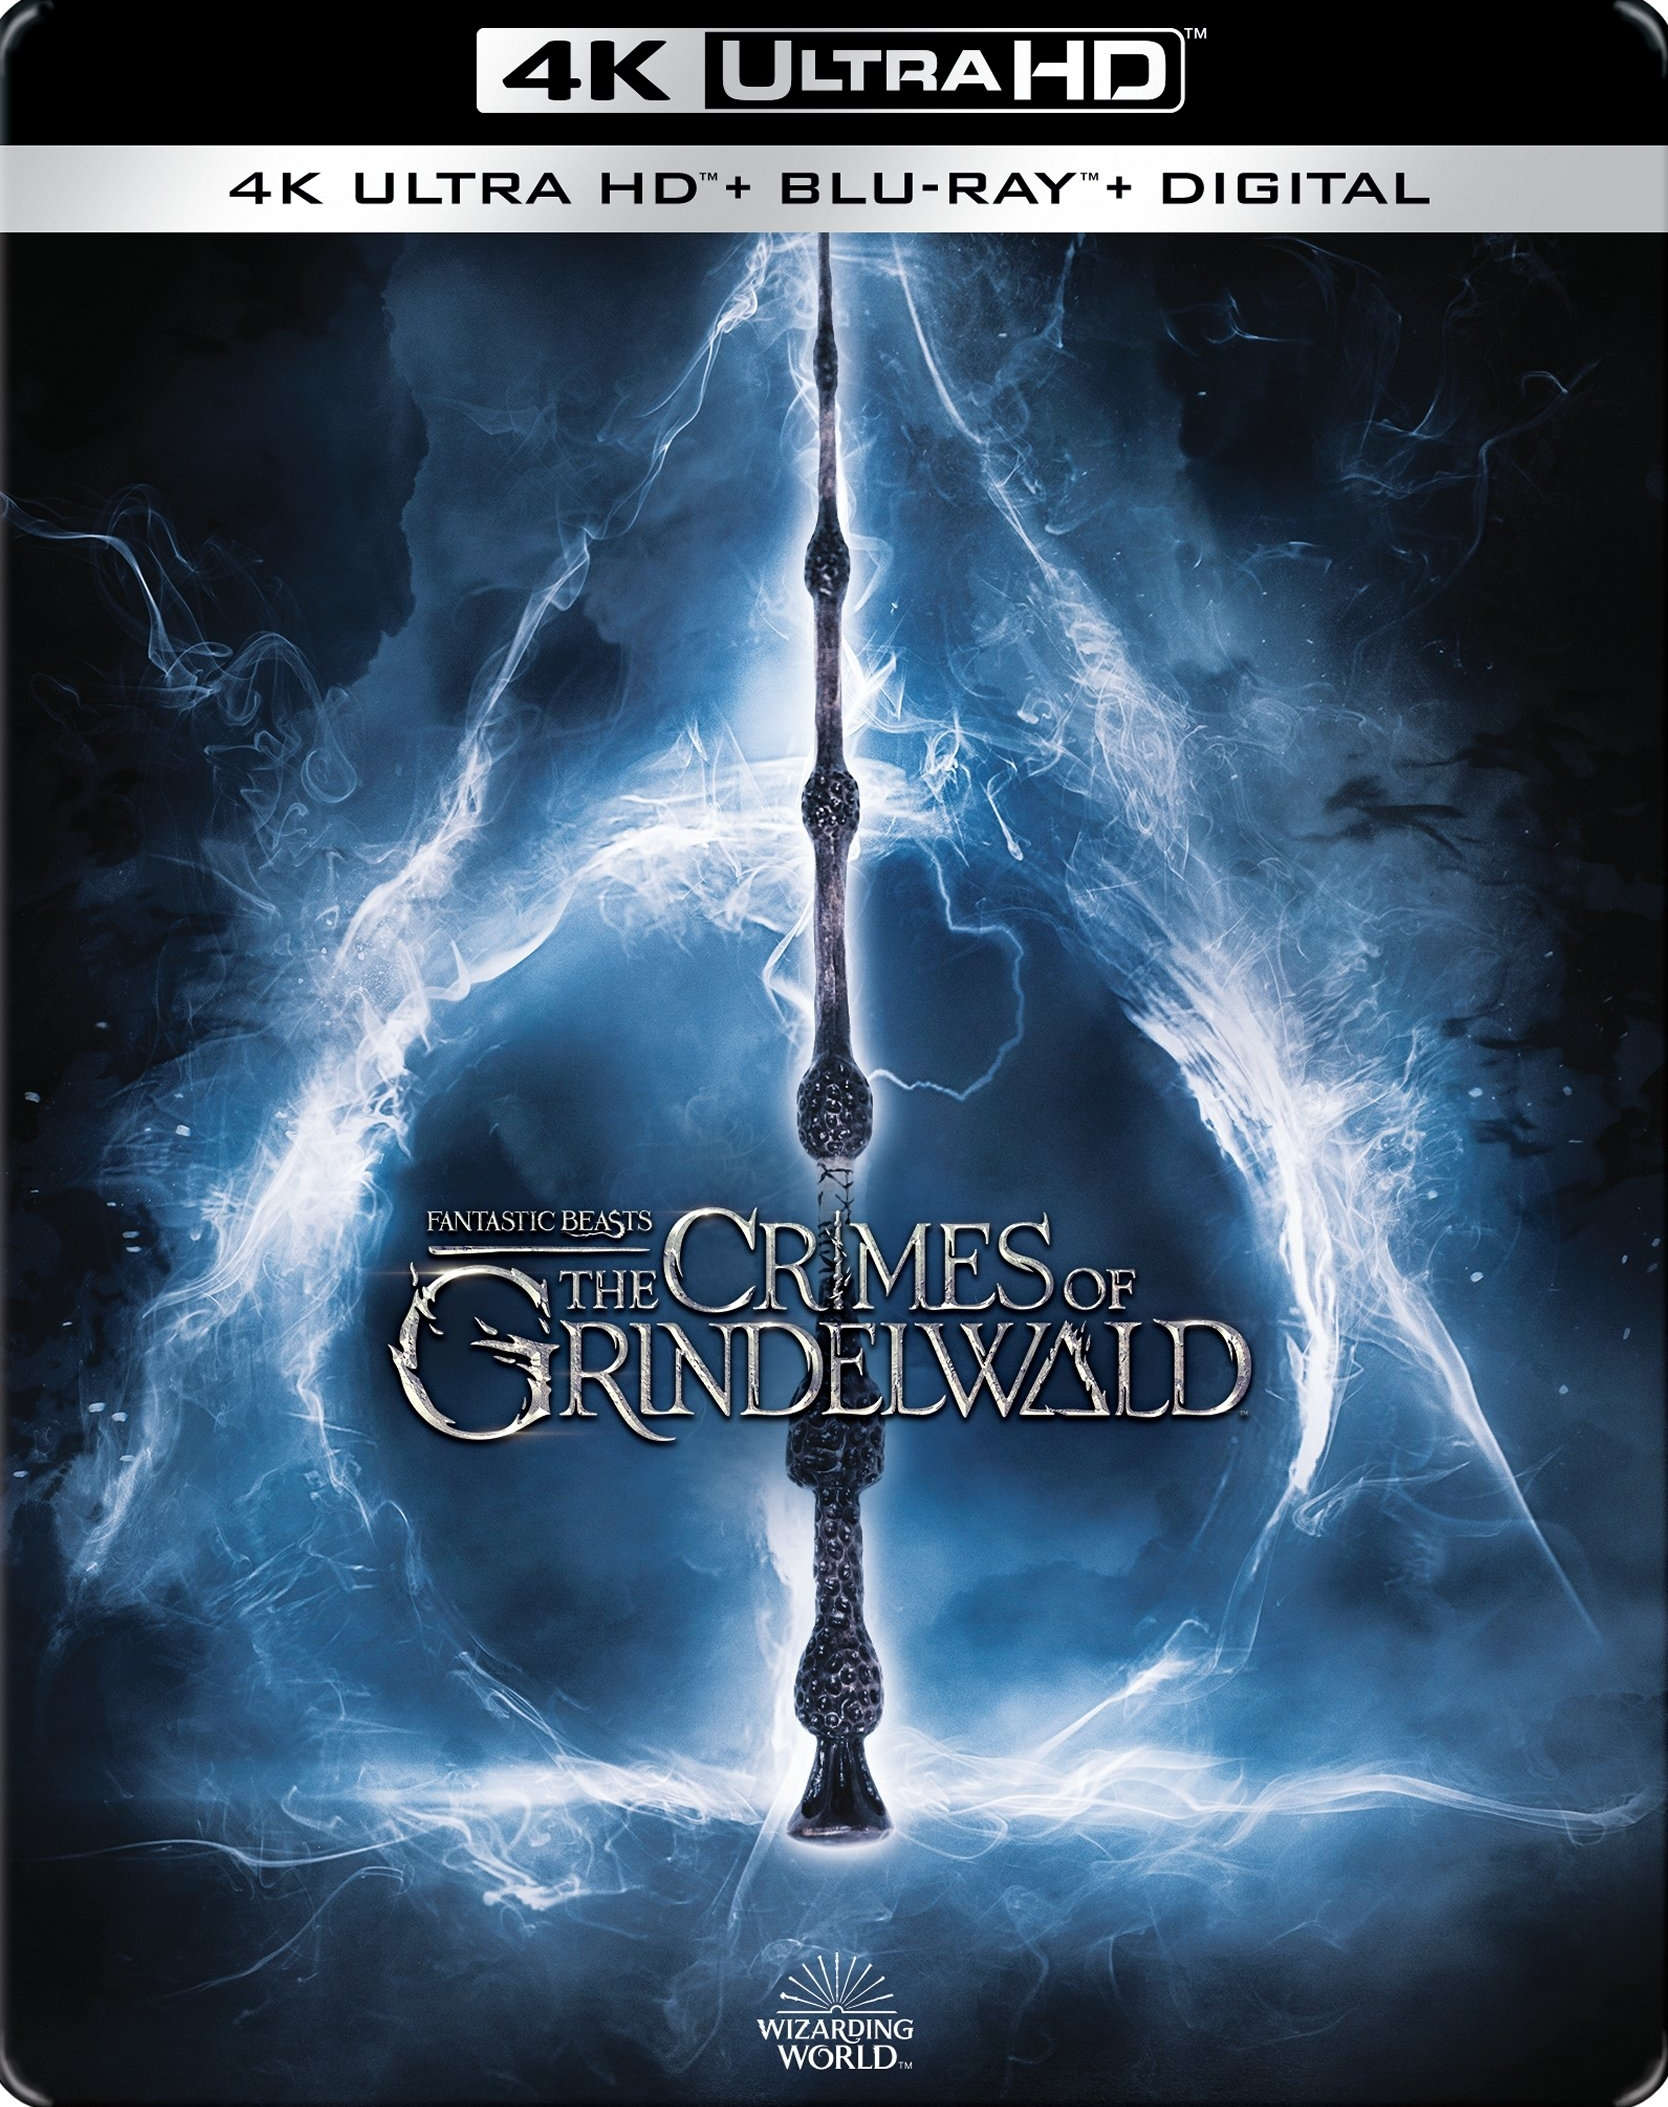 Fantastic Beasts 2: The Crimes of Grindelwald (SteelBook)(4K Ultra HD Blu-ray)(Pre-order / TBA)